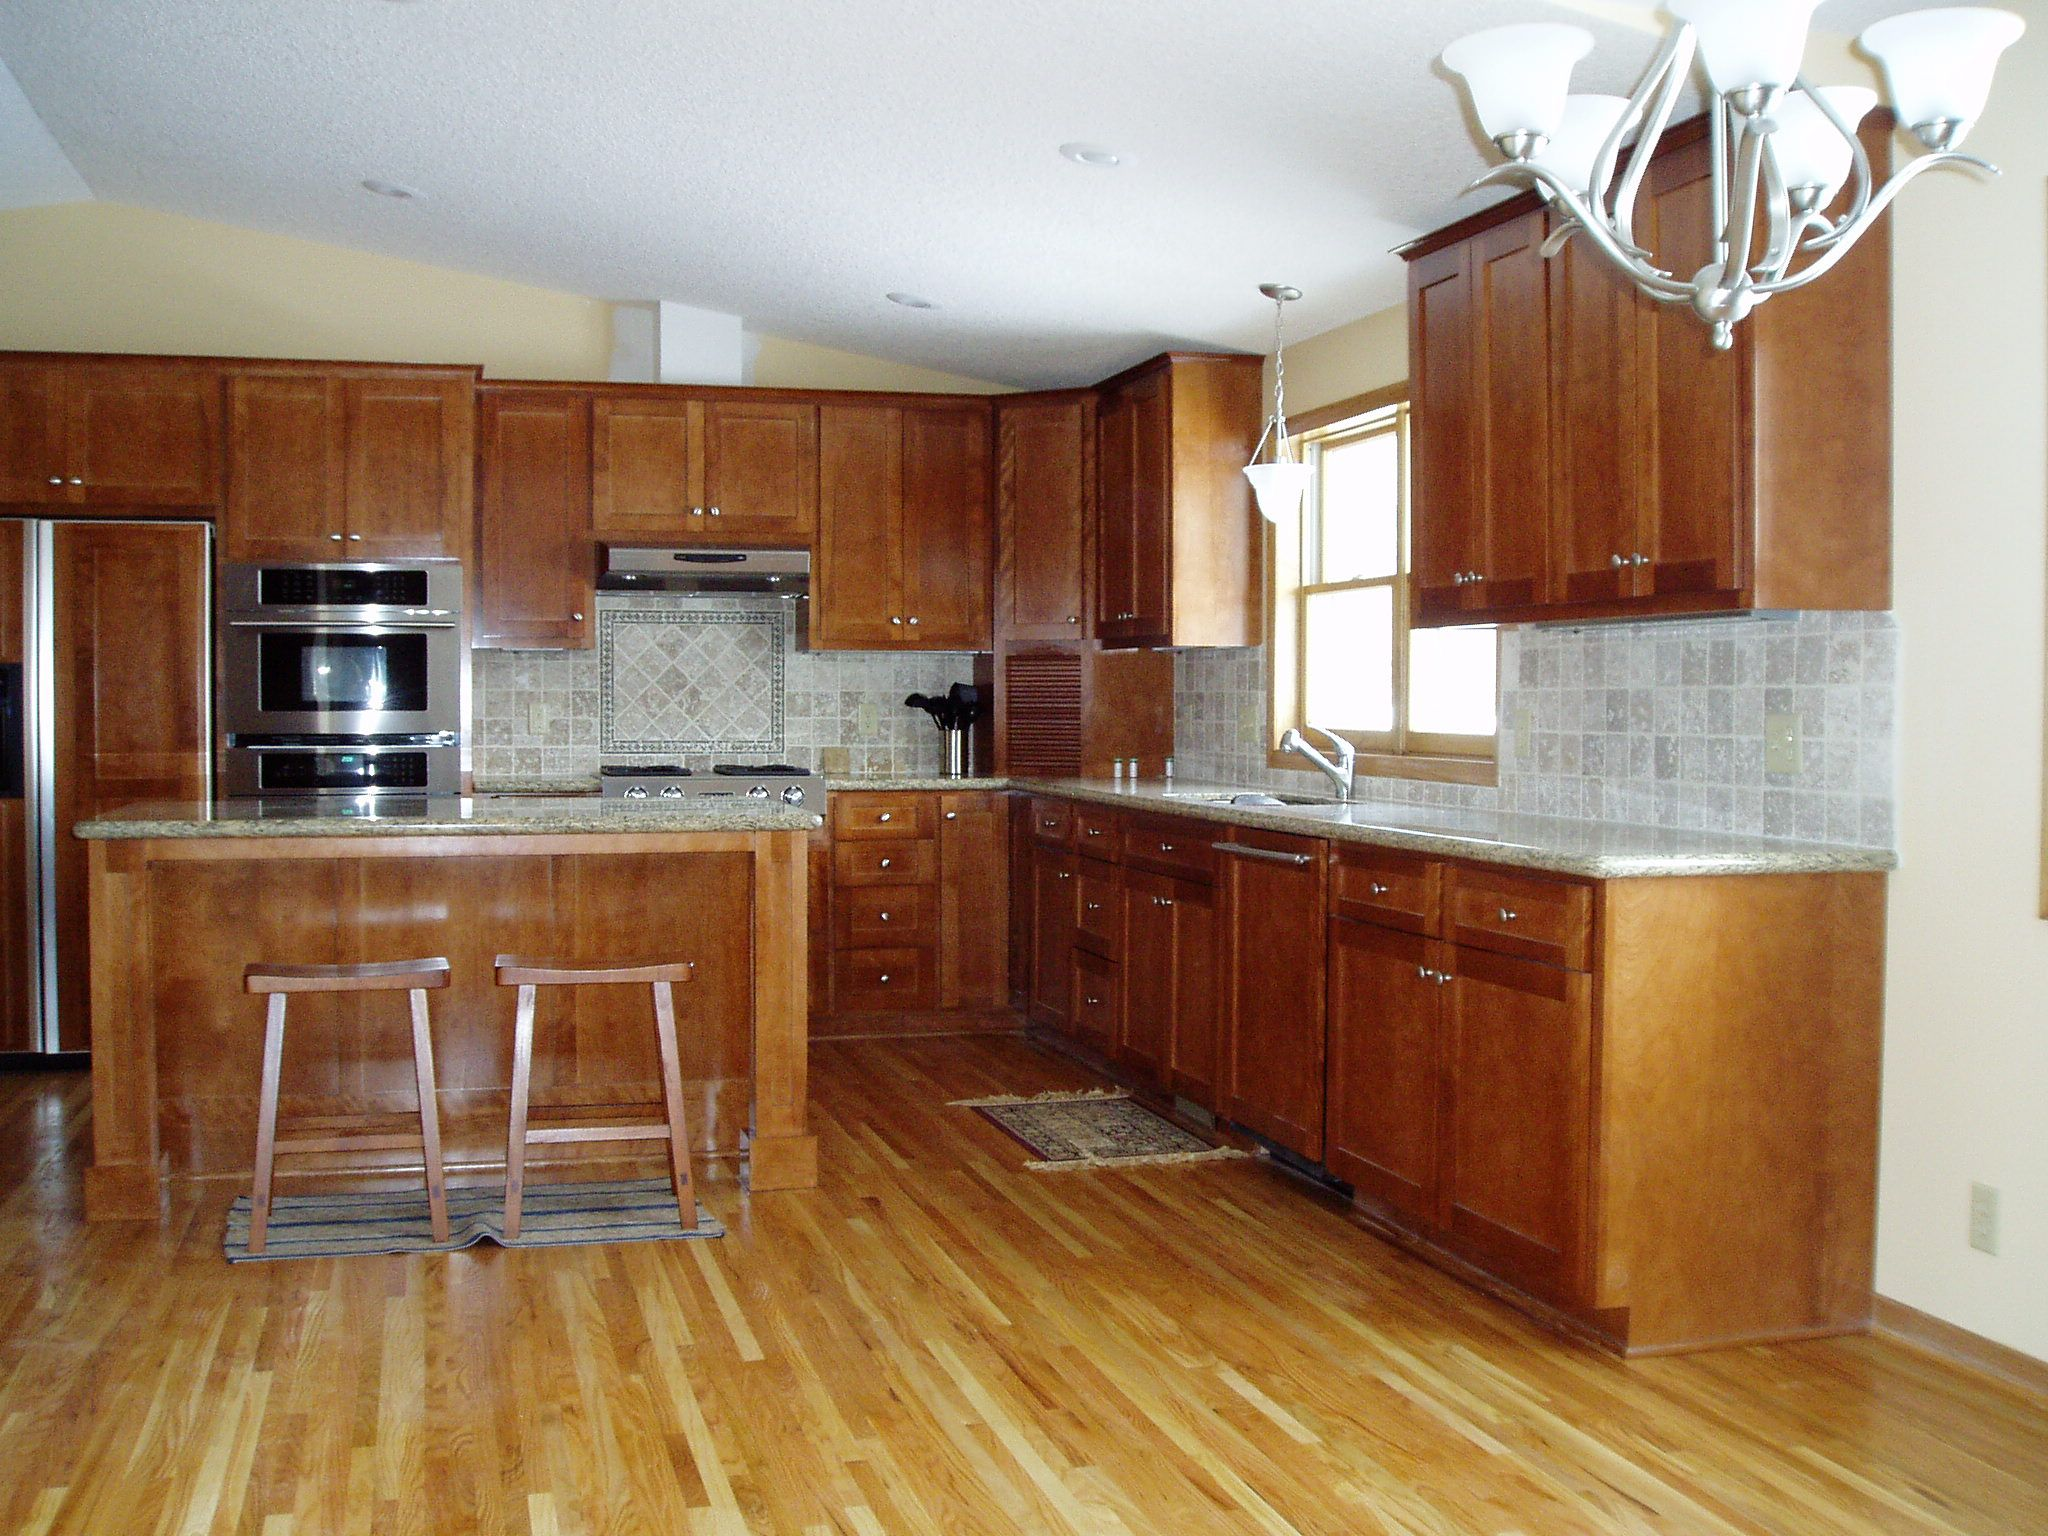 Wooden Floors For Kitchens Wood Flooring That Goes Well With Honey Oak Cabinets Dream Home